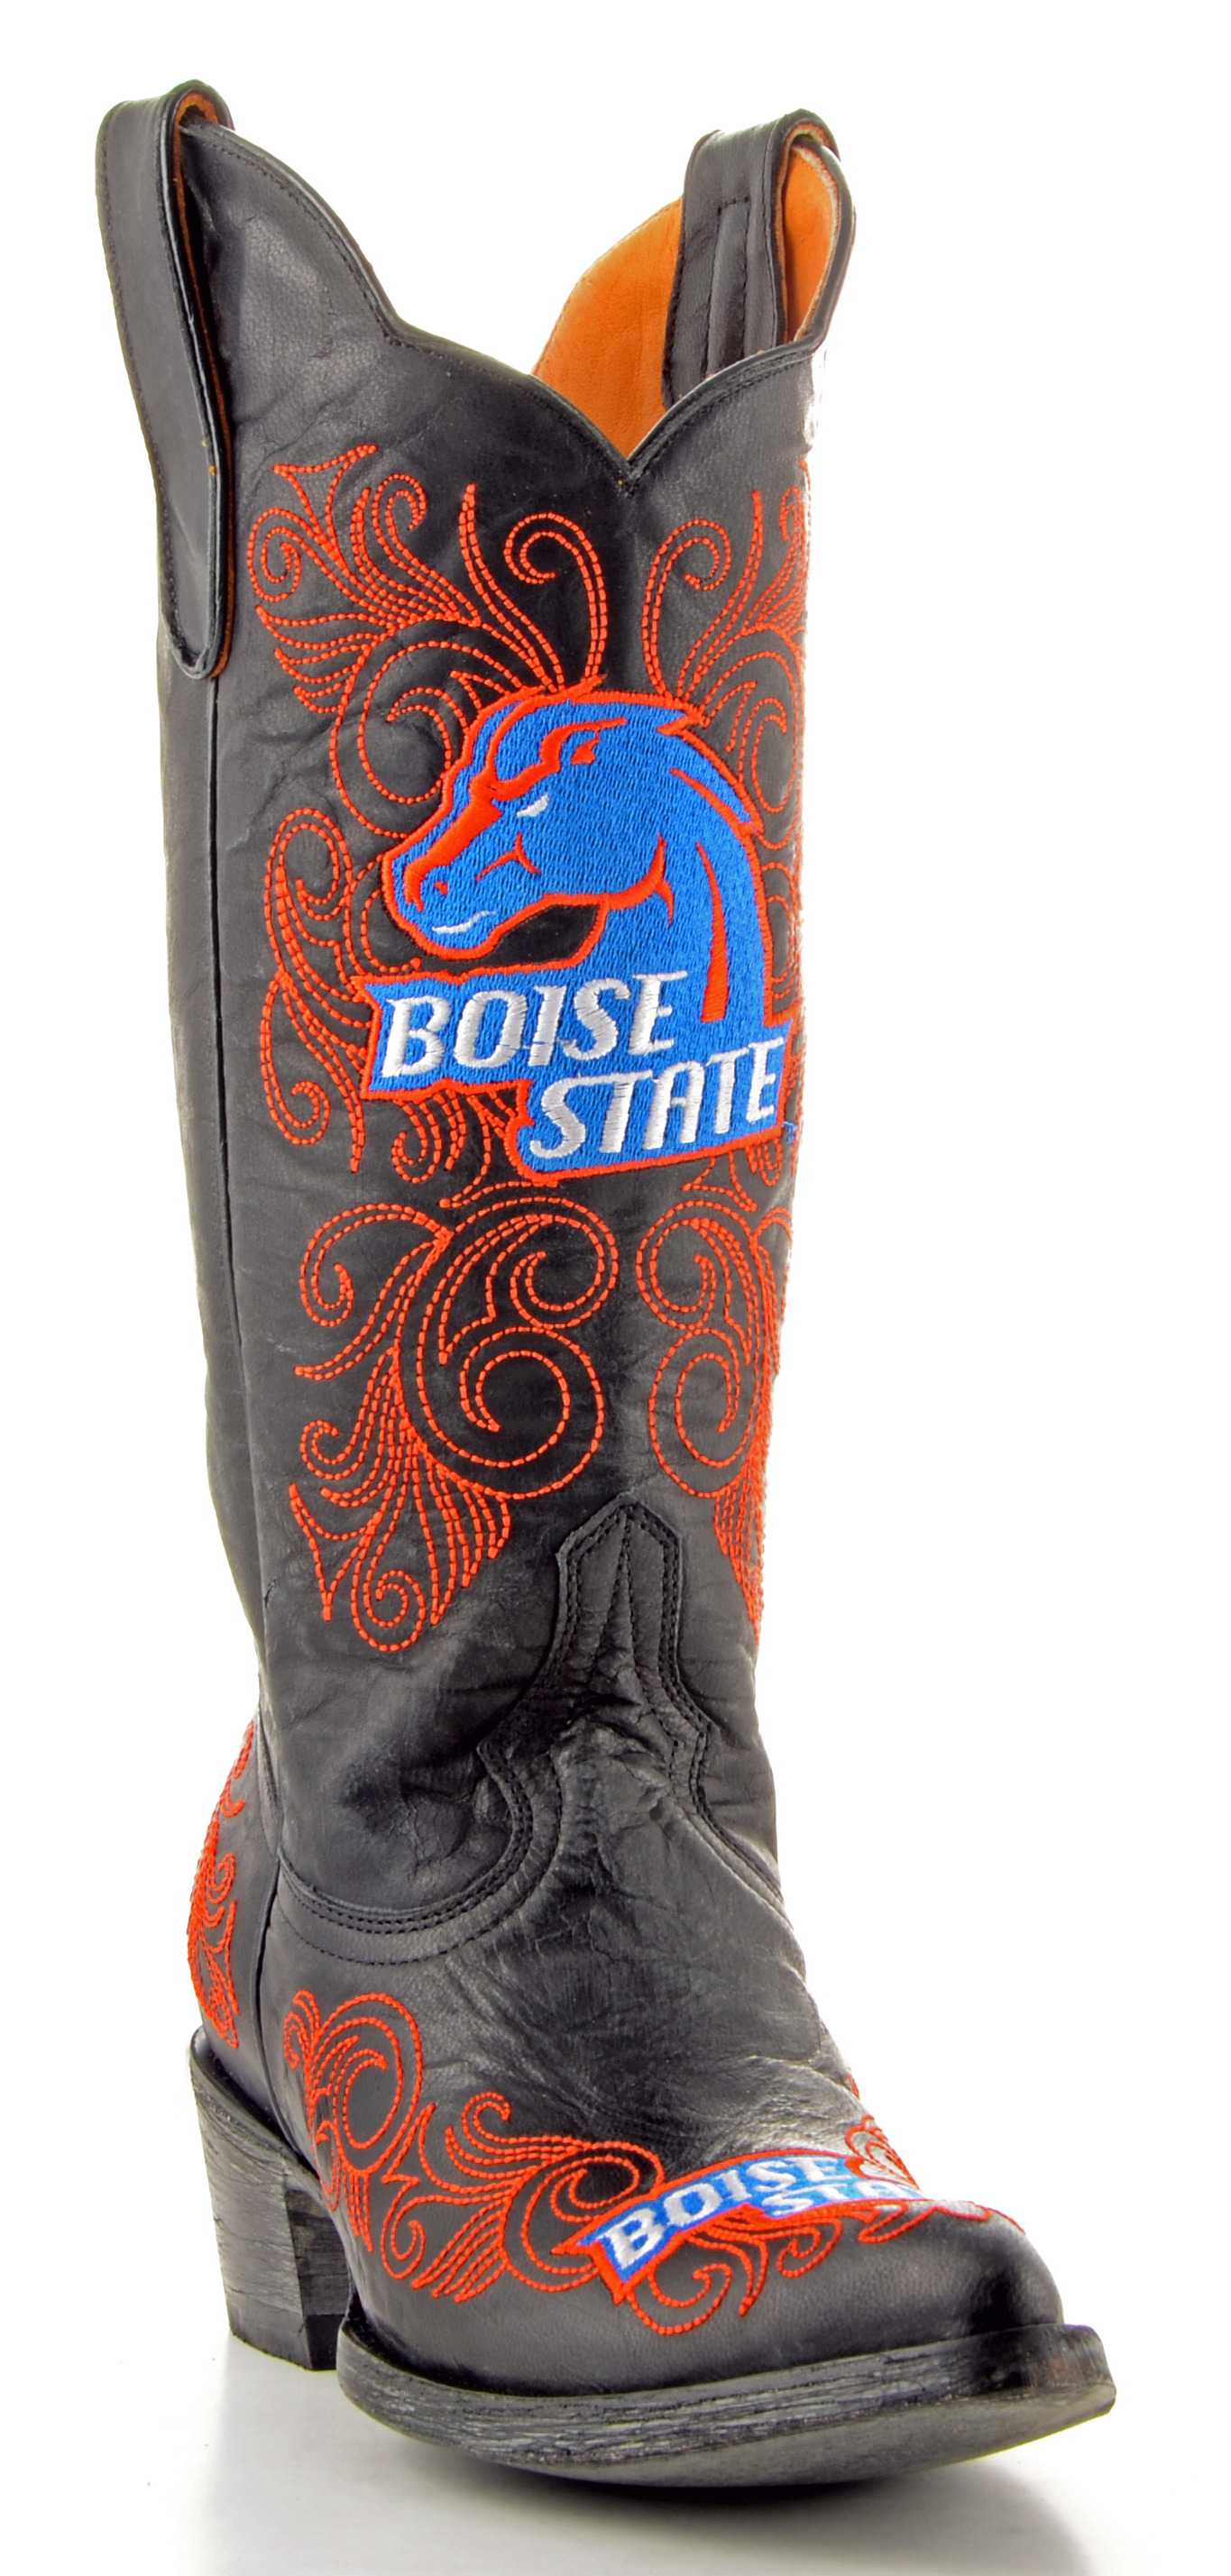 Gameday Boots Womens College Team Boise State Broncos Black BSU-L024-2 by Gameday Boots